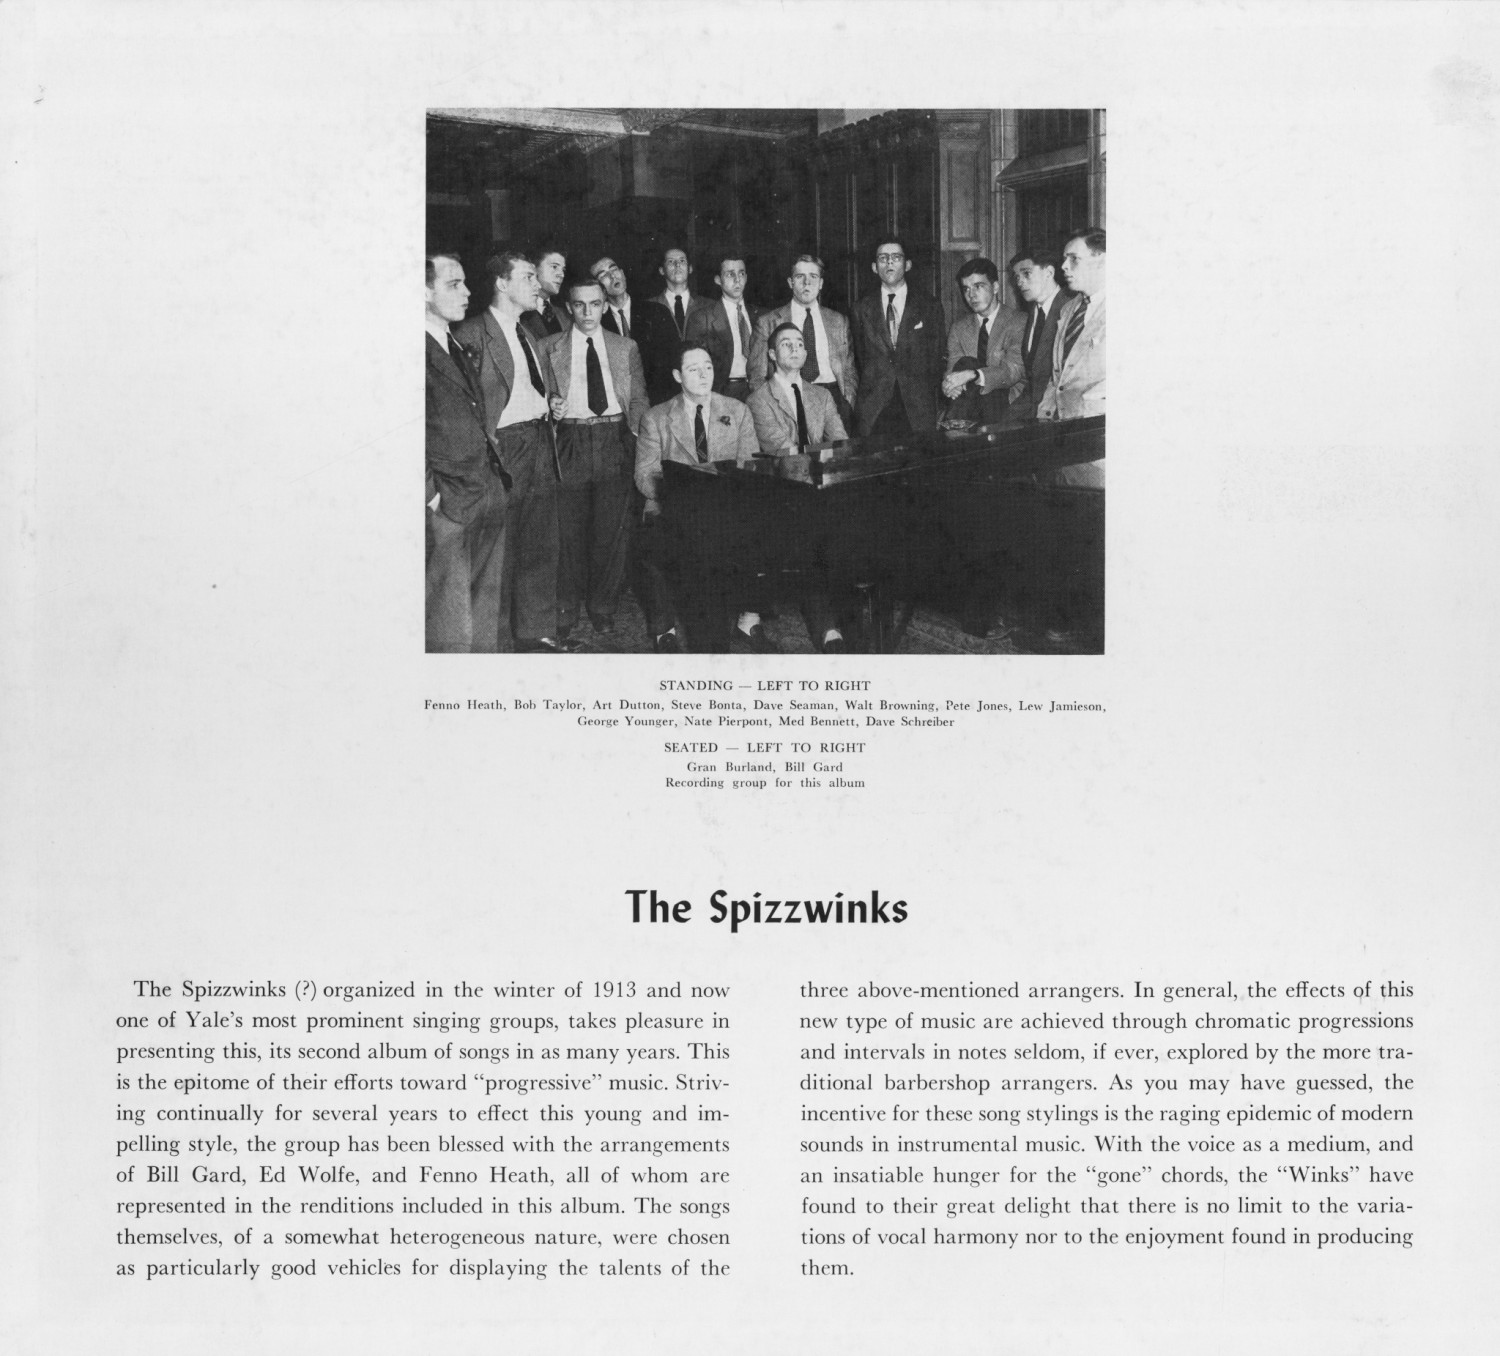 1950 Spizzwinks - inside cover